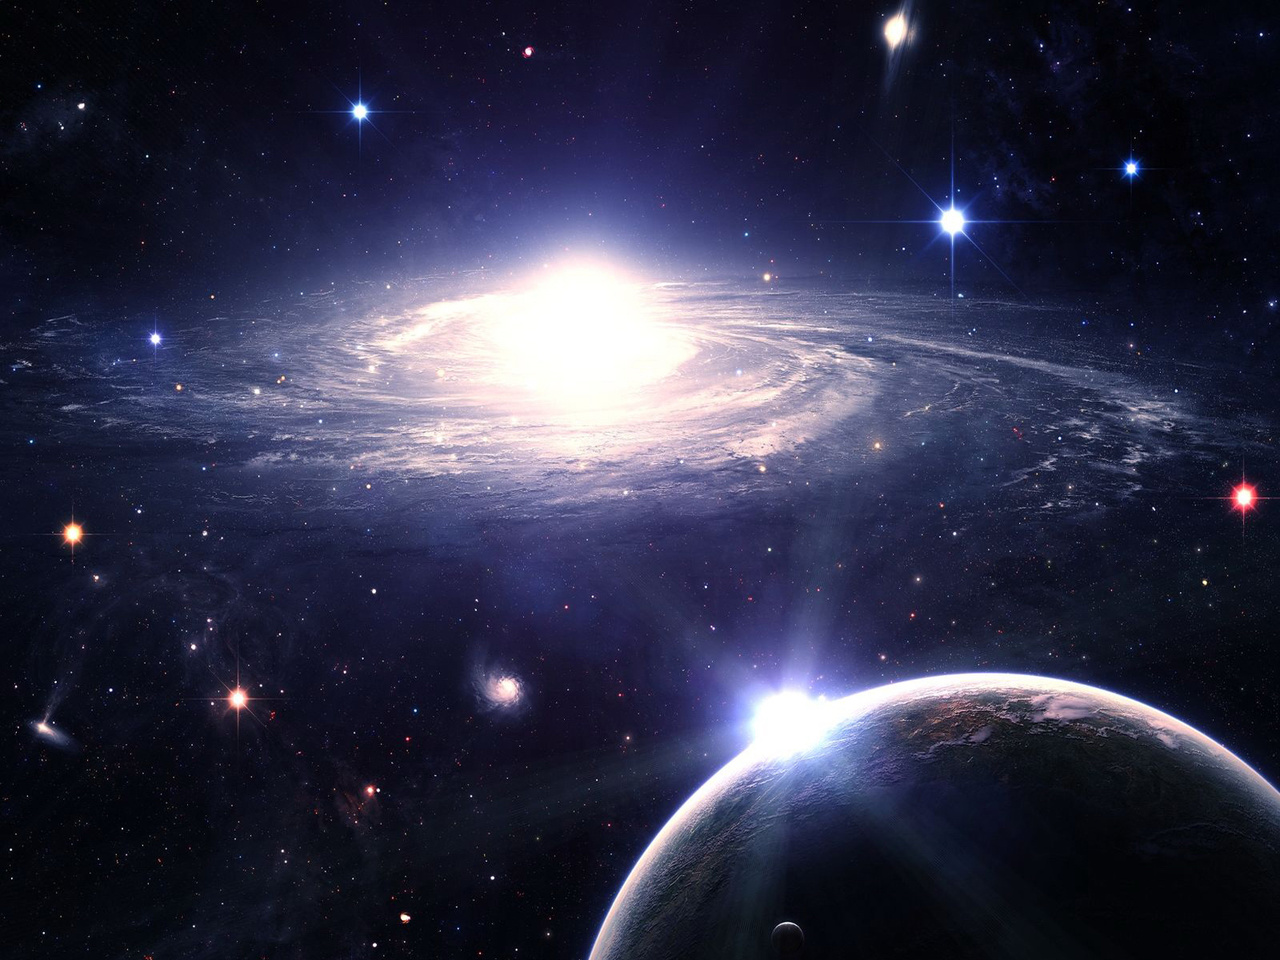 Background galaxy, foreground a planet